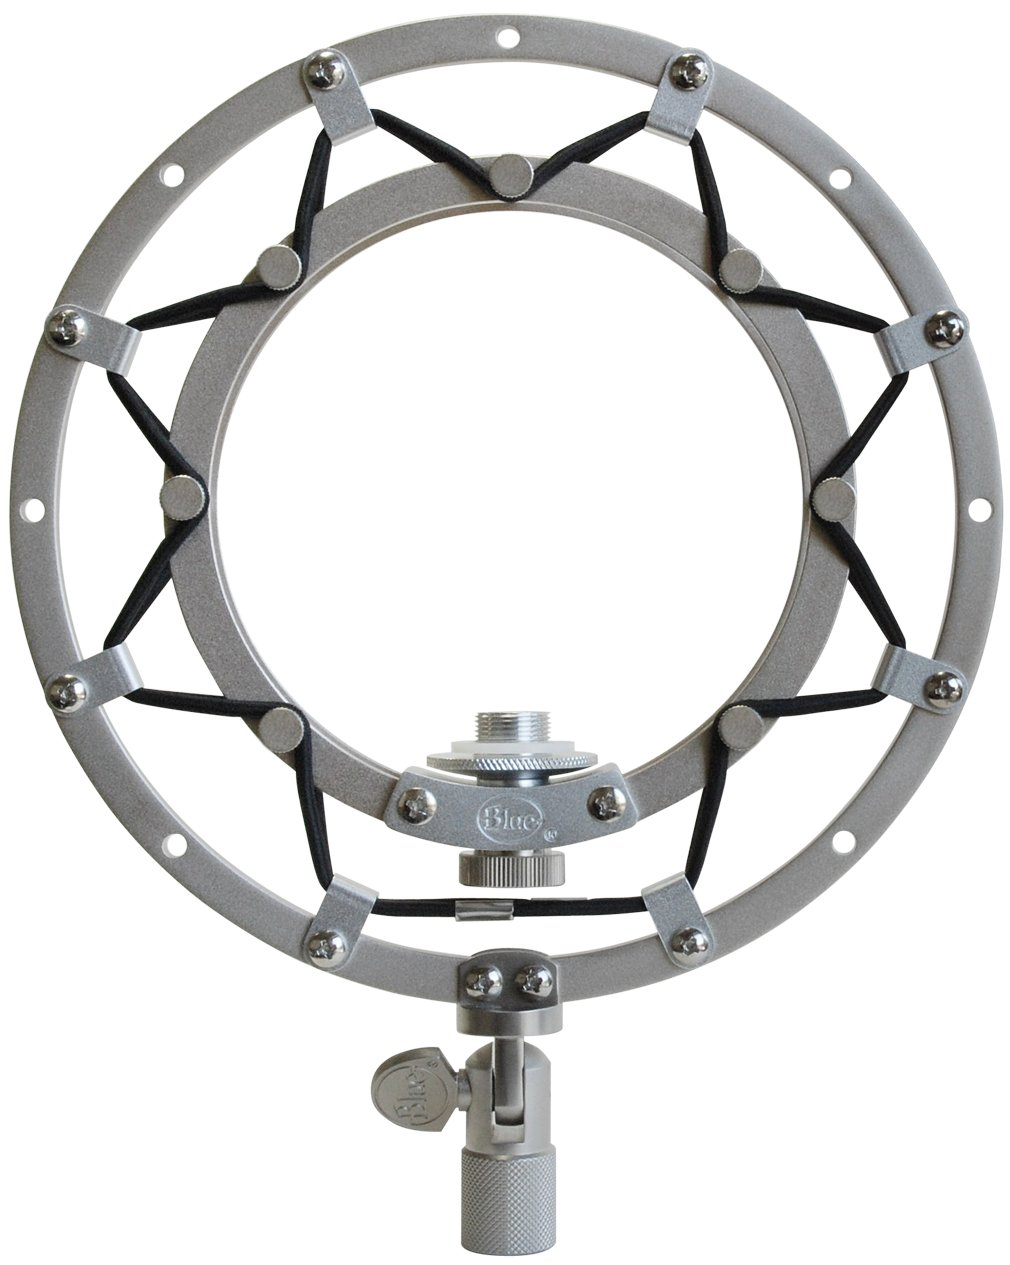 Redshifter's Gadget Reviews: Blue Microphones Ringer Universal Shockmount for Ball Microphones